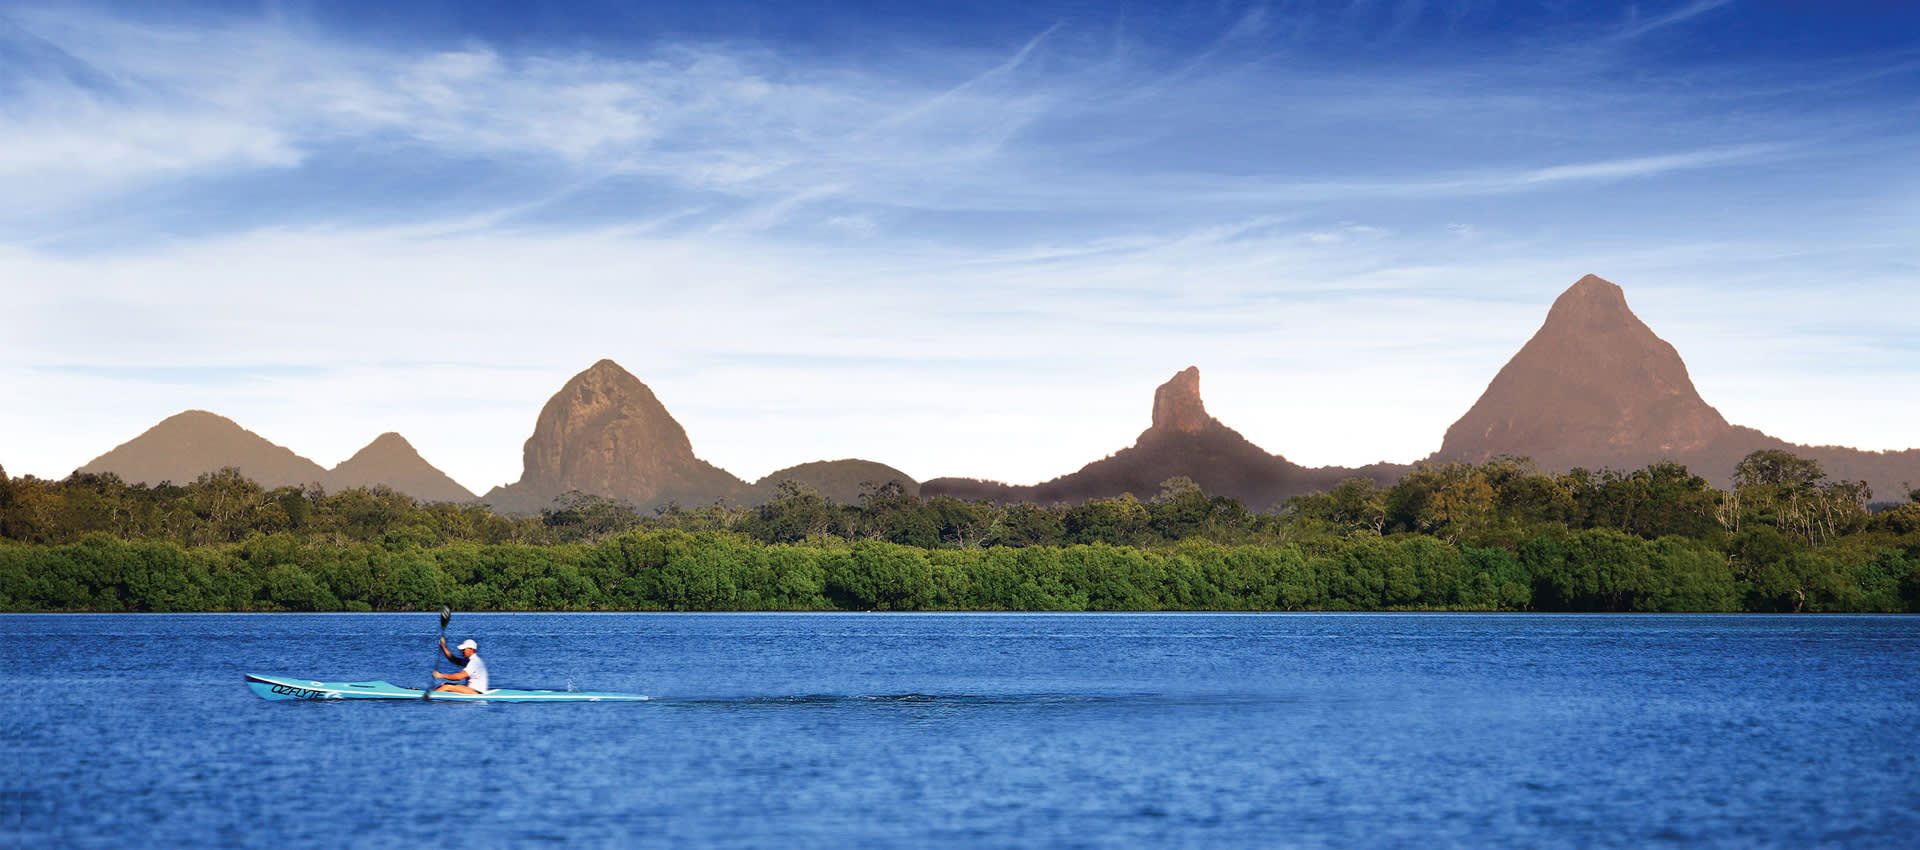 5 must dos for nature lovers on the Sunshine Coast